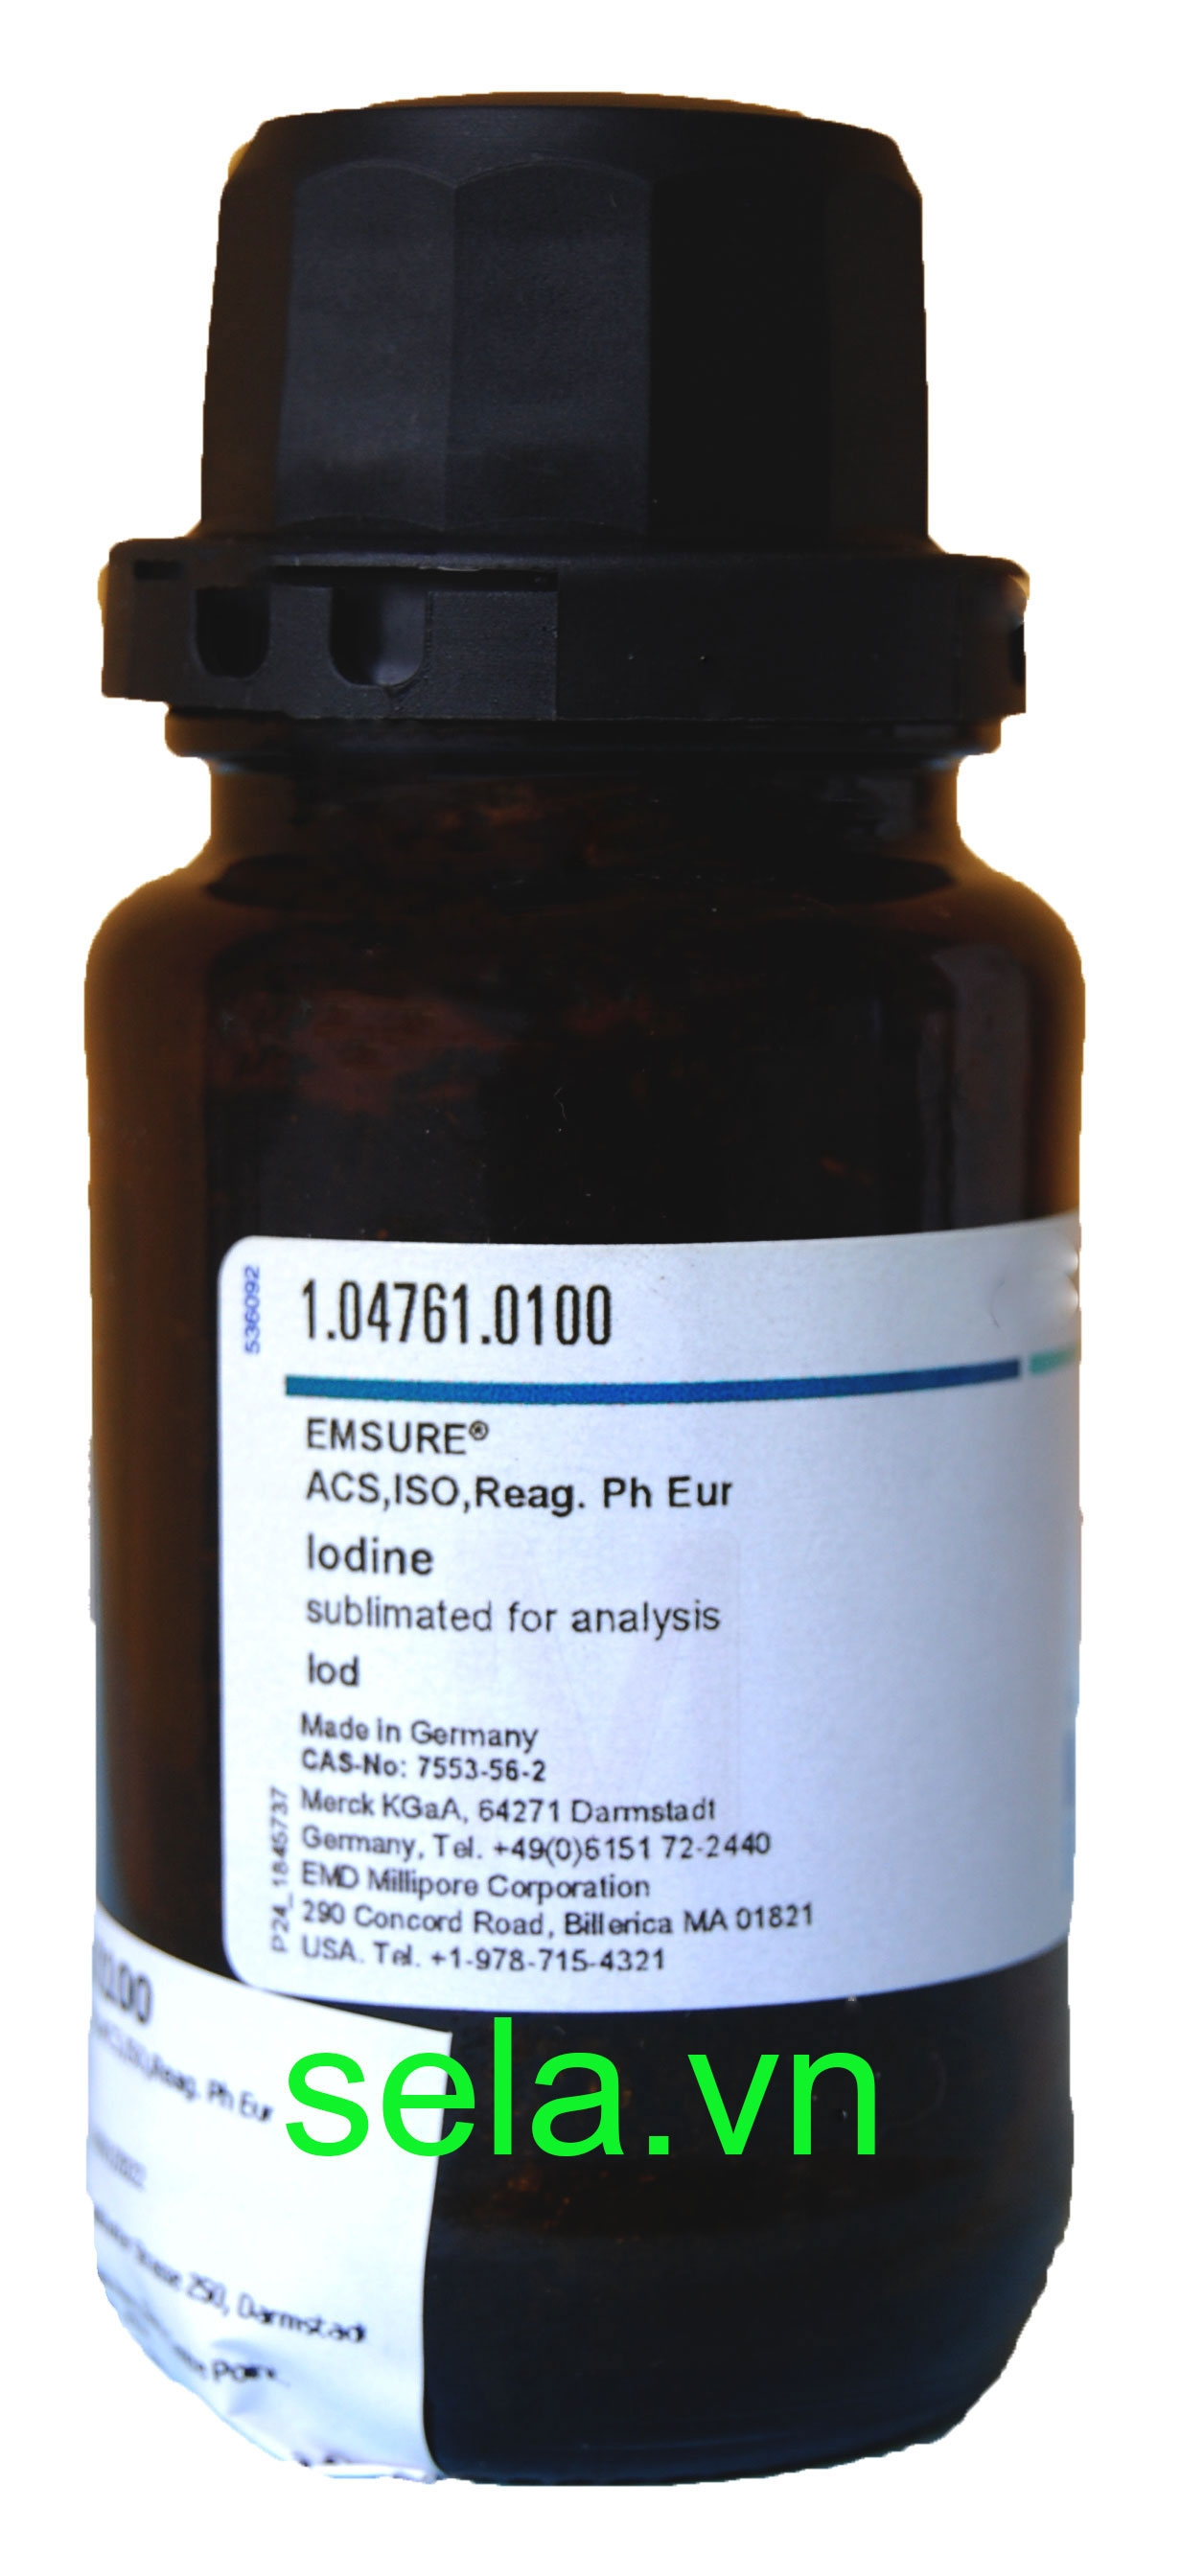 Iodine sublimated for analysis EMSURE® ACS,ISO,Reag. Ph Eur